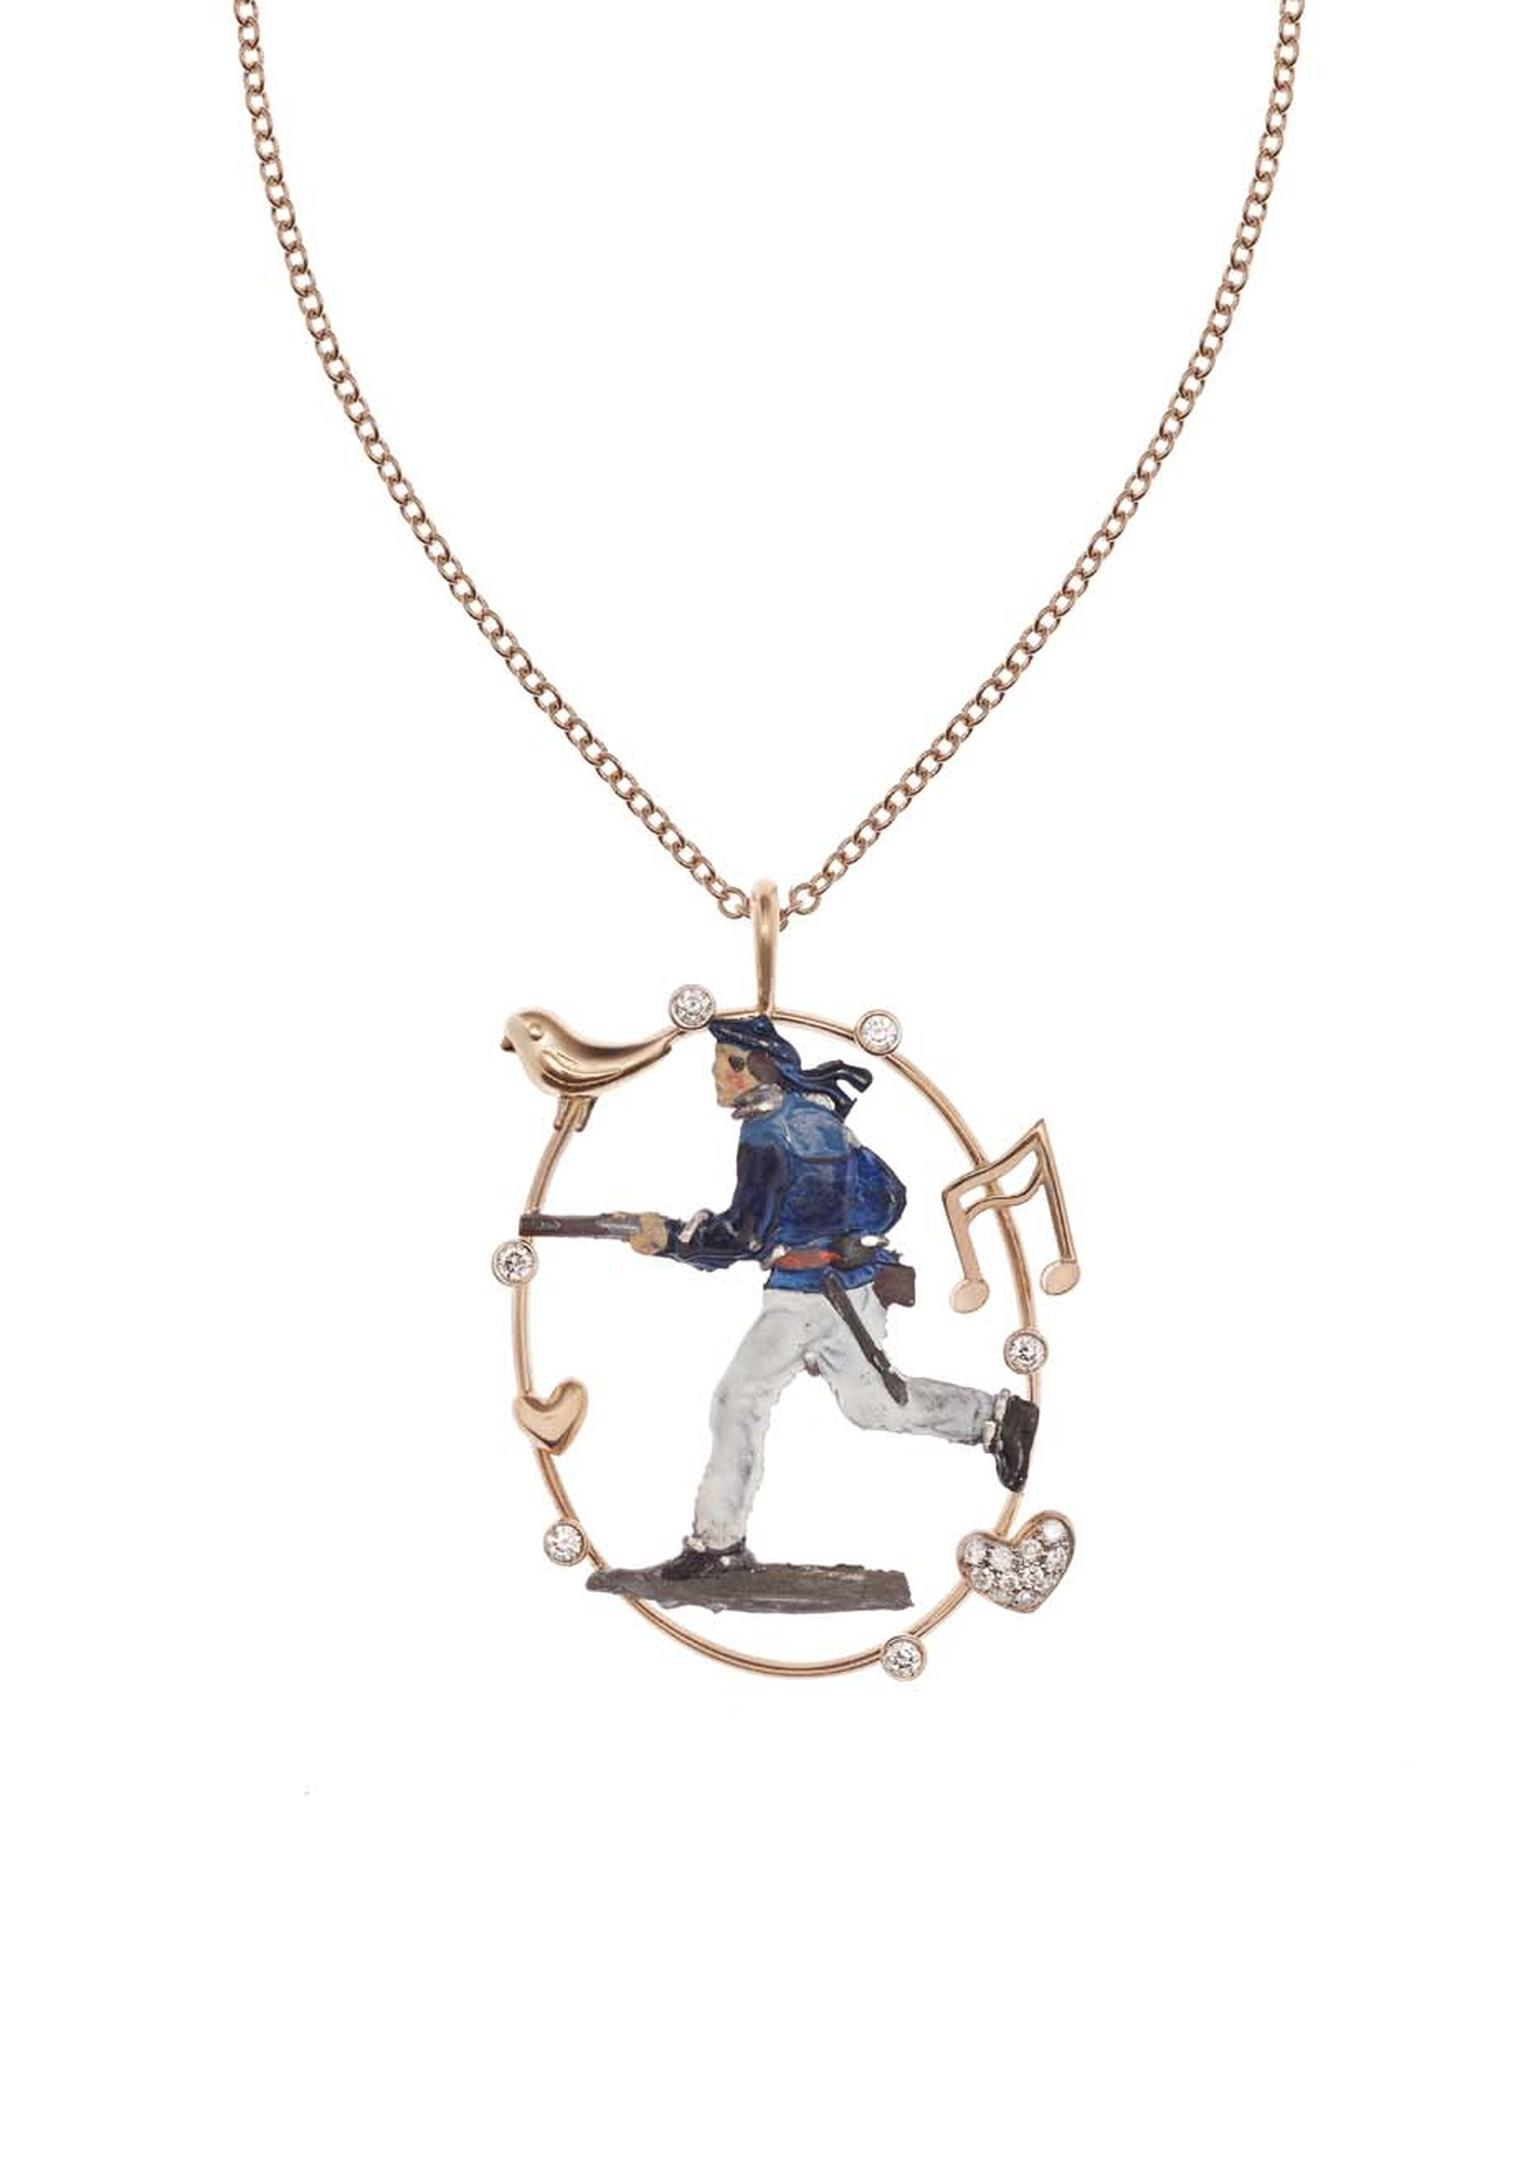 Francesca Villa rose gold antique toy soldier necklace measuring 50cm, set with 0.20ct of diamonds (£1,249).